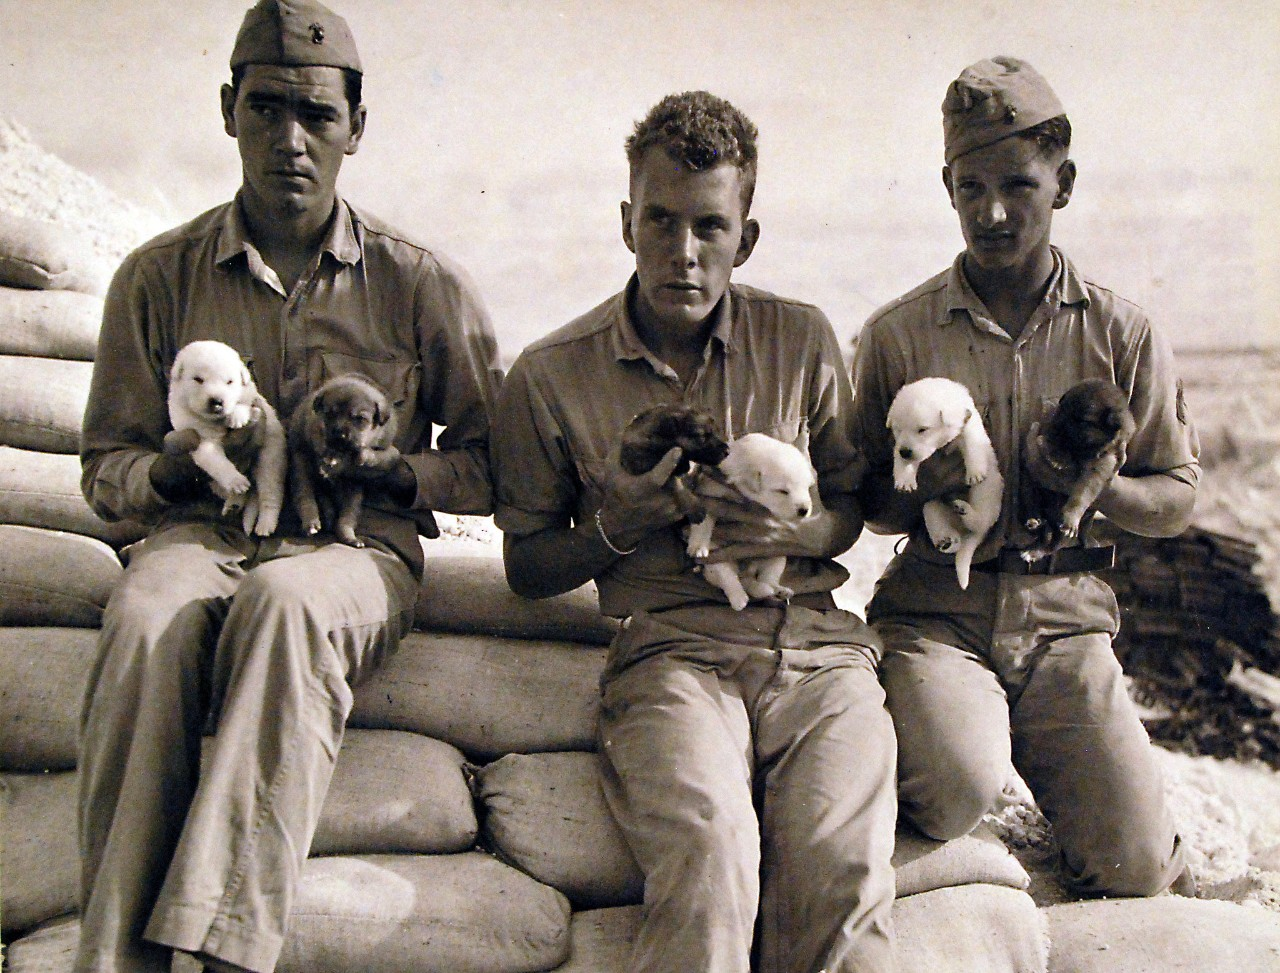 On April 28, 2018, our newest exhibit will open featuring our very own four-legged Navy sailors.